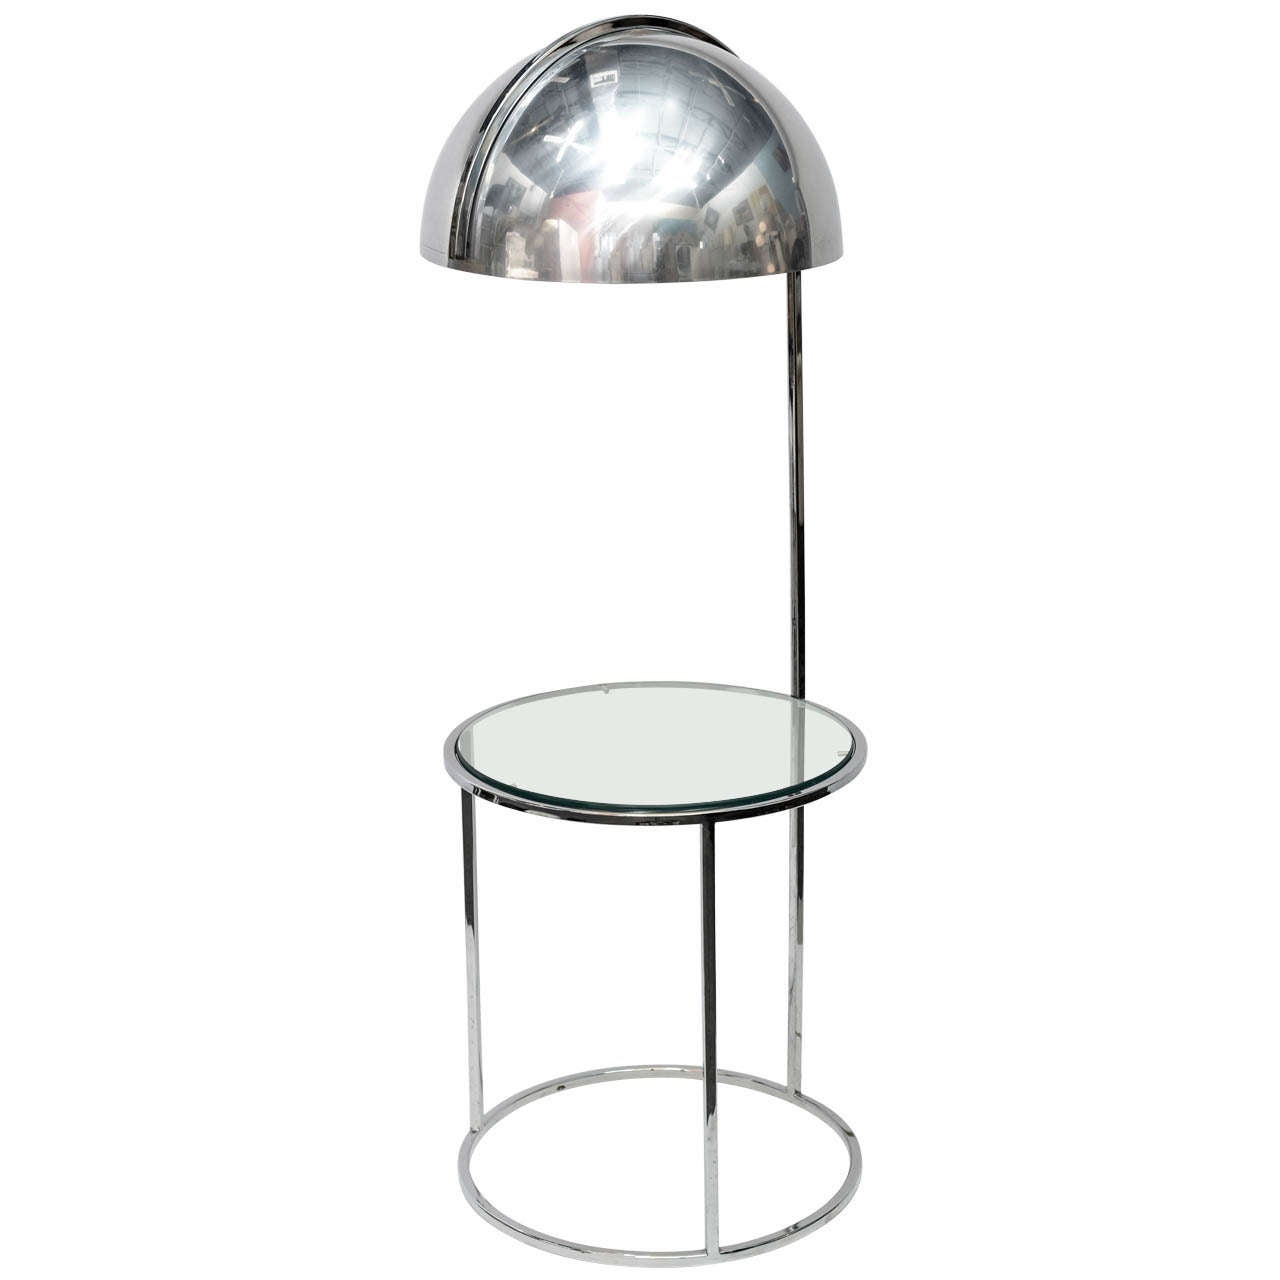 Chrome Dome Floor Lamp with End Table